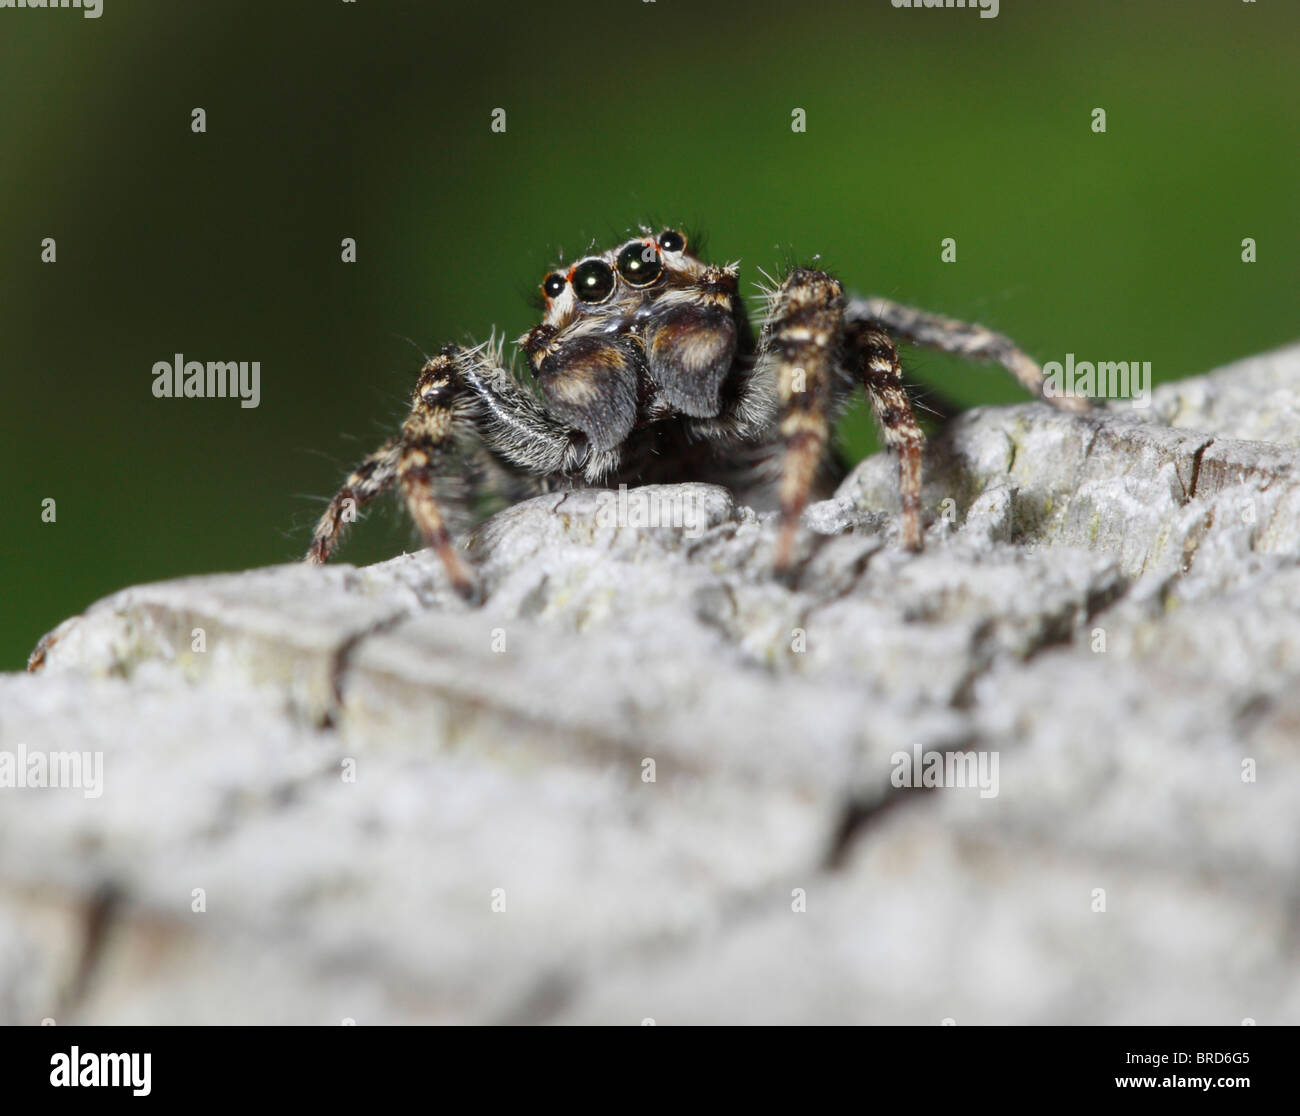 A Fencepost Spider looking at the camera showing 2 pairs of eyes - Stock Image